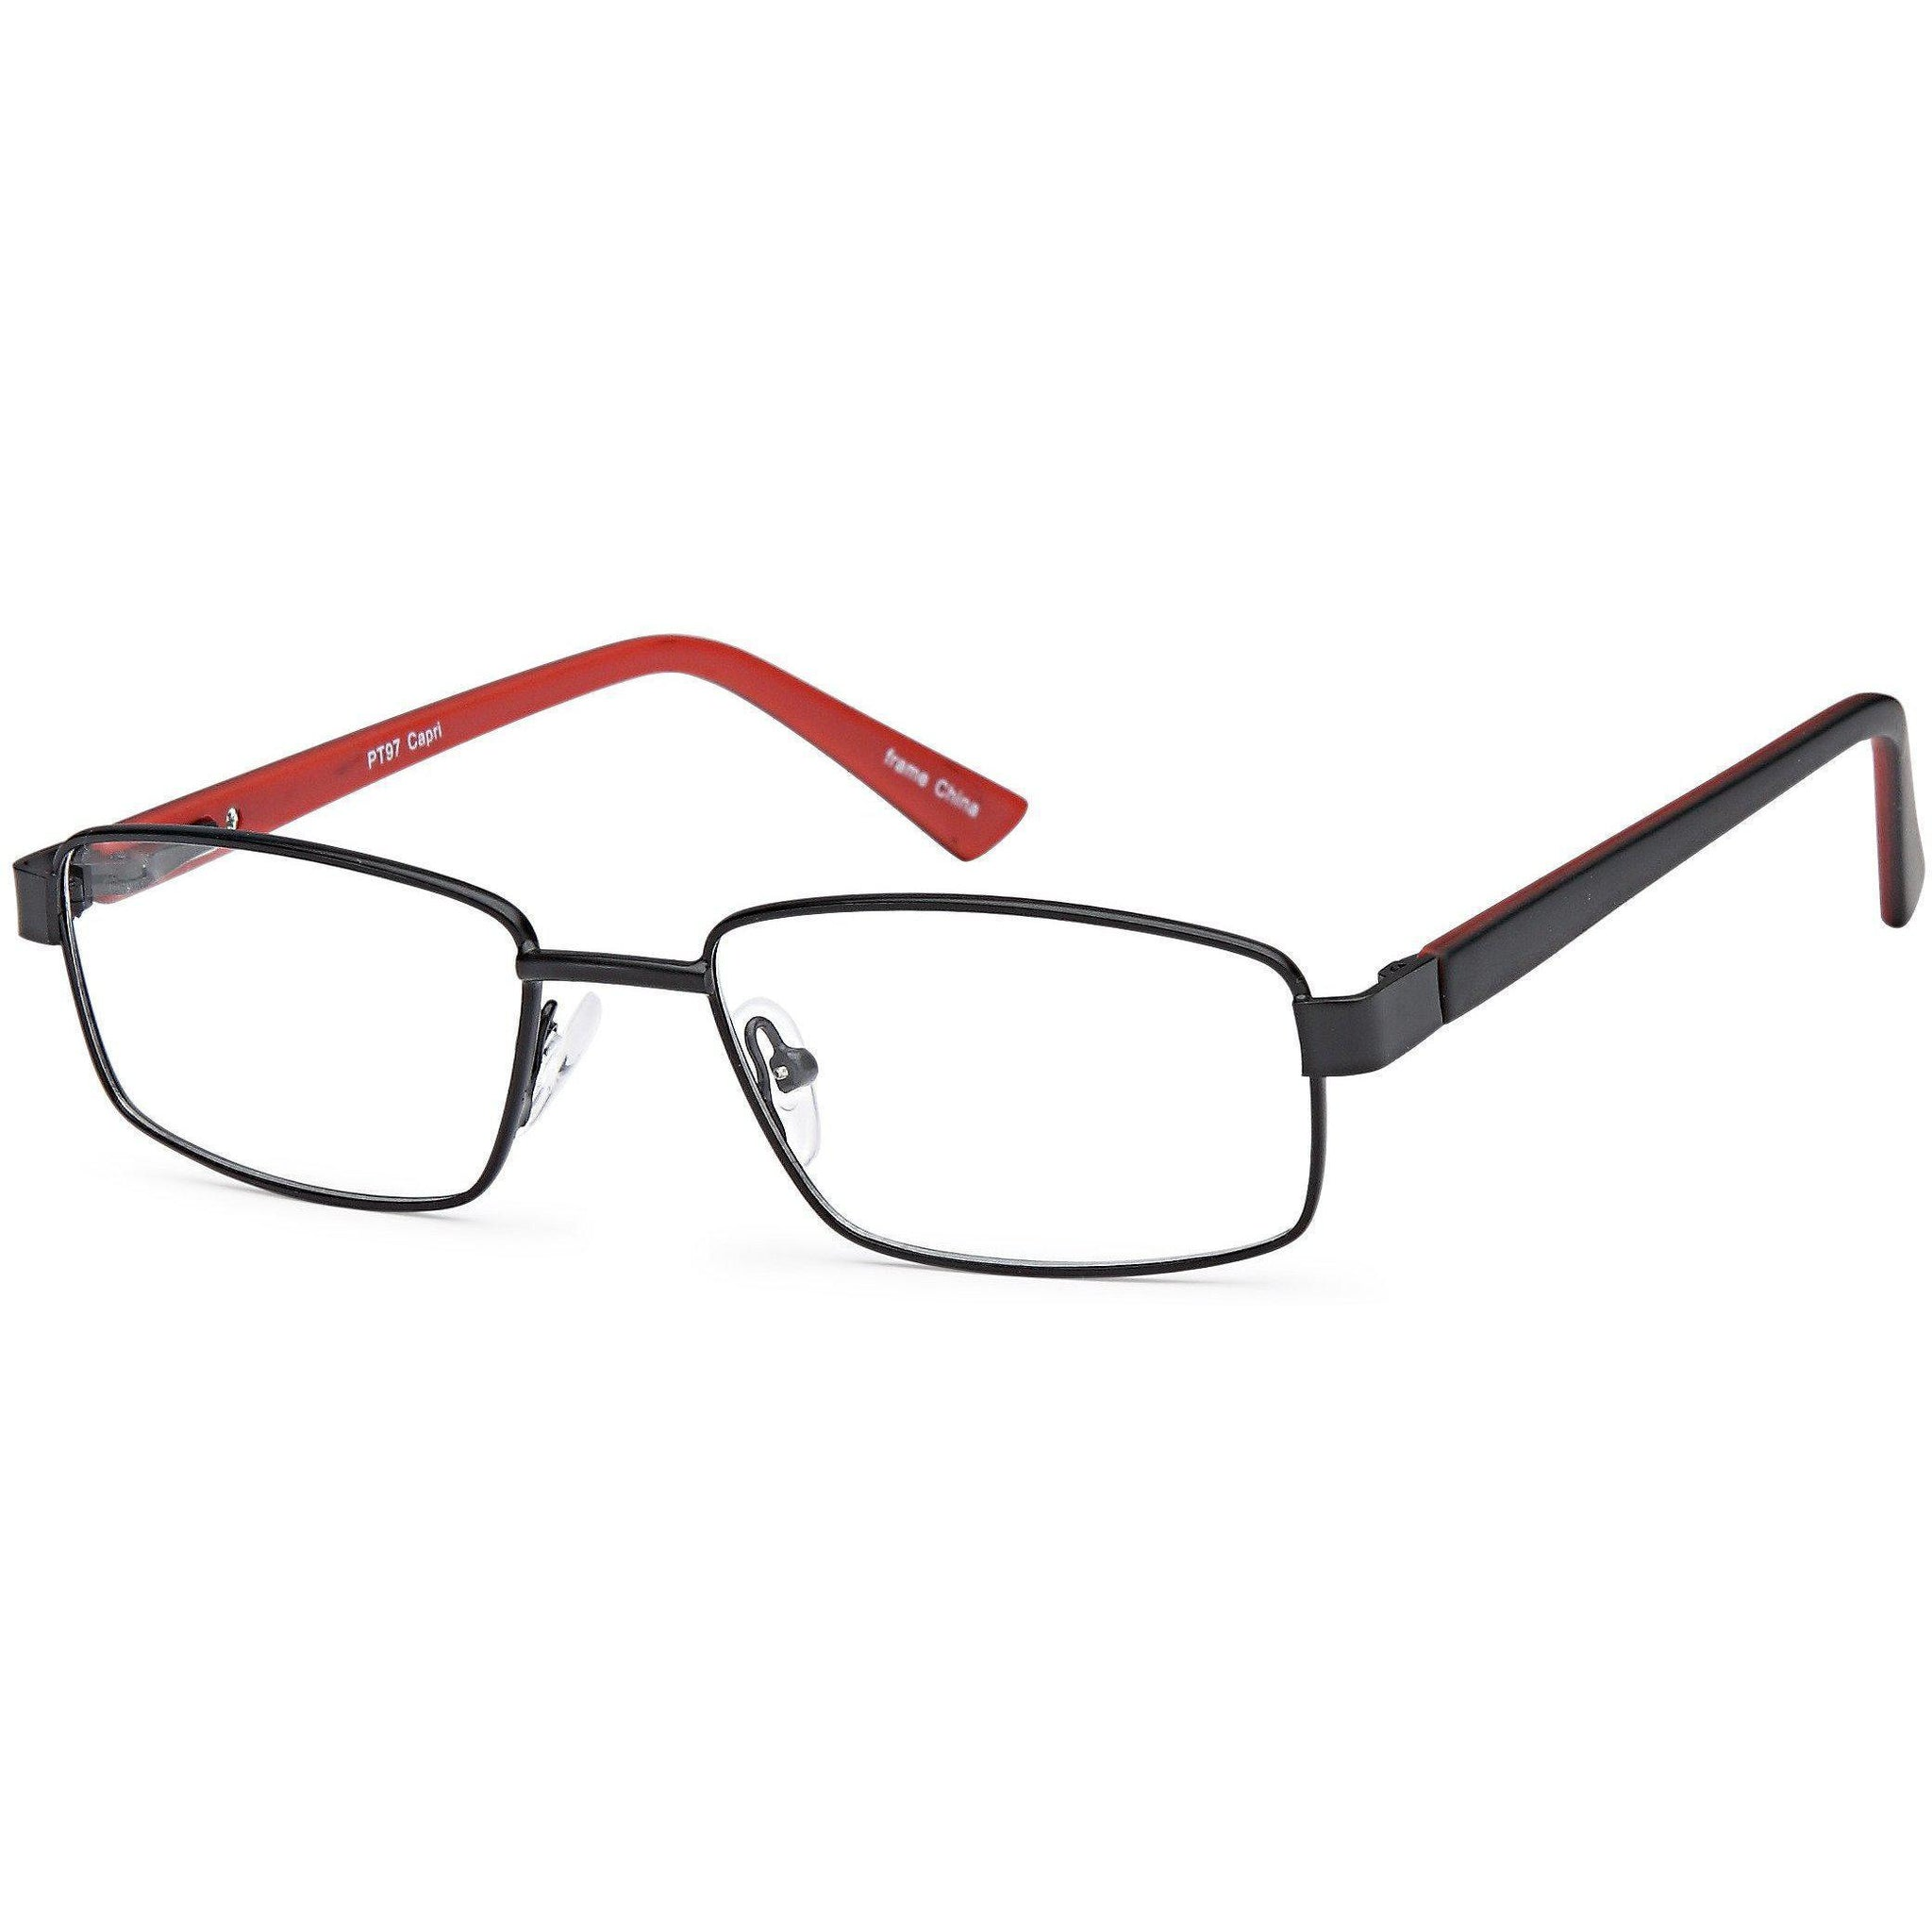 Appletree Prescription Glasses PT 97 Eyeglasses Frame